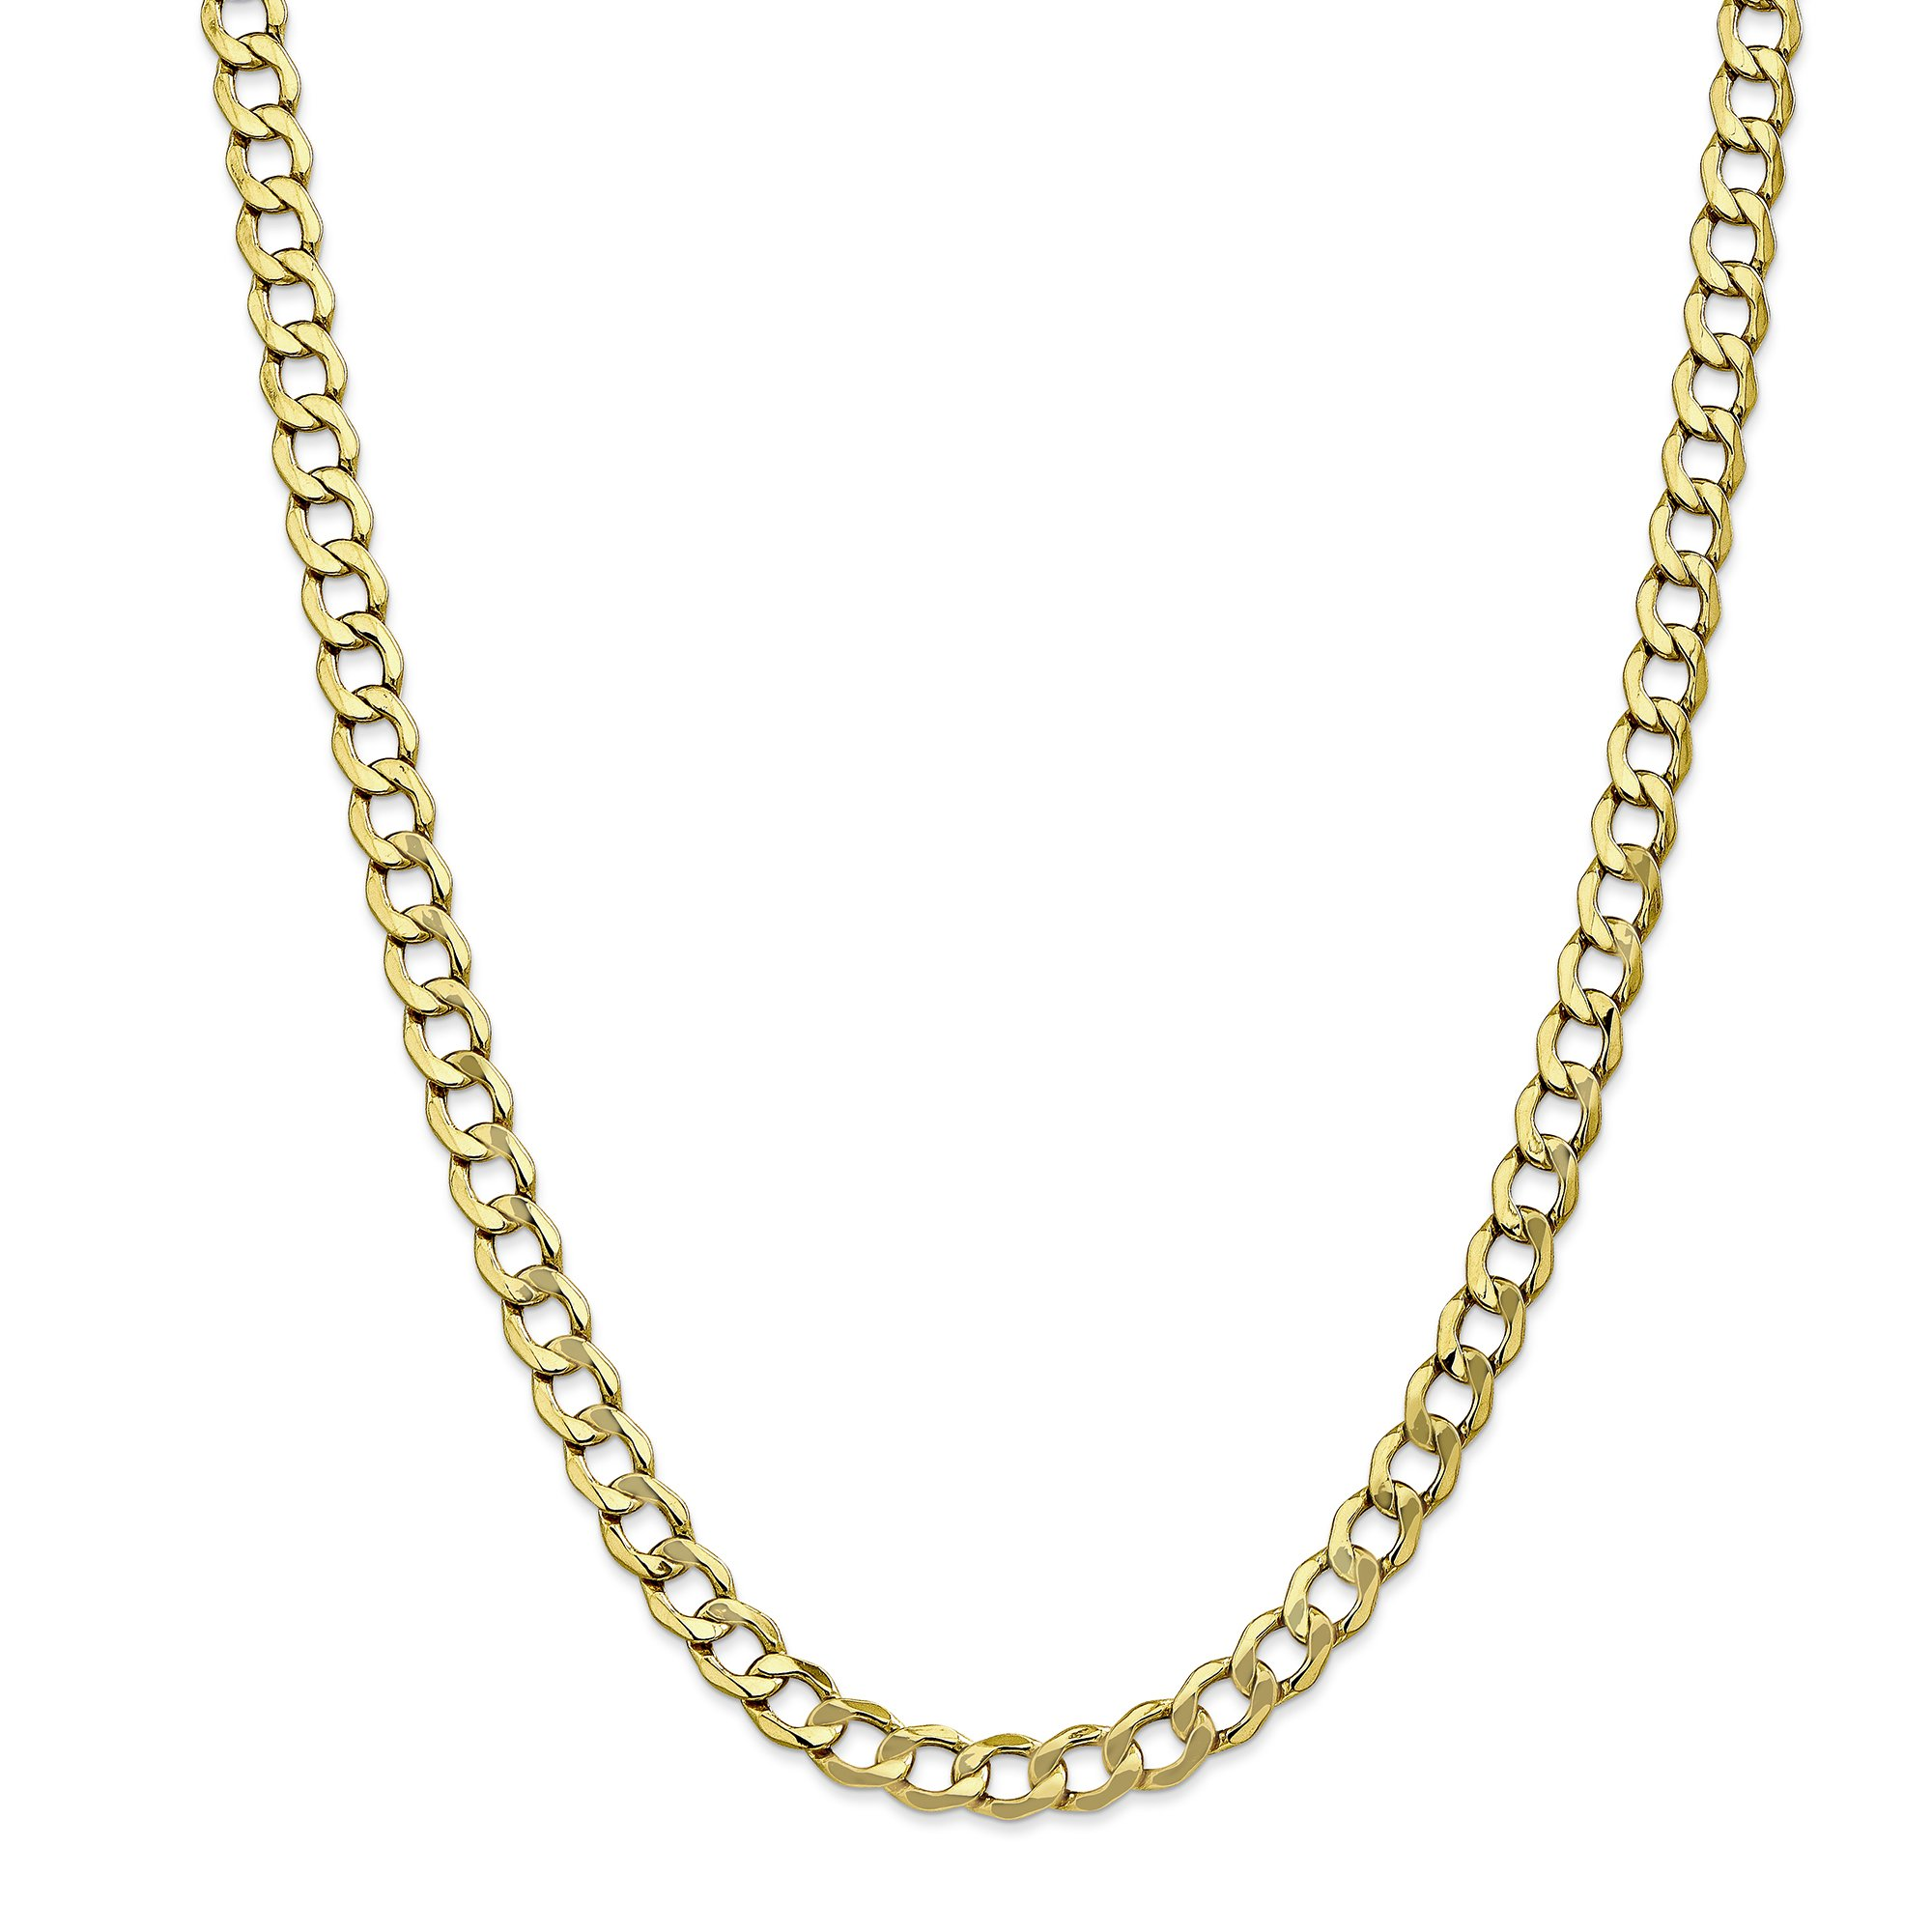 ICE CARATS 10k Yellow Gold 7mm Curb Cuban Link Chain Necklace 24 Inch Anchor Fine Jewelry Gift Set For Women Heart